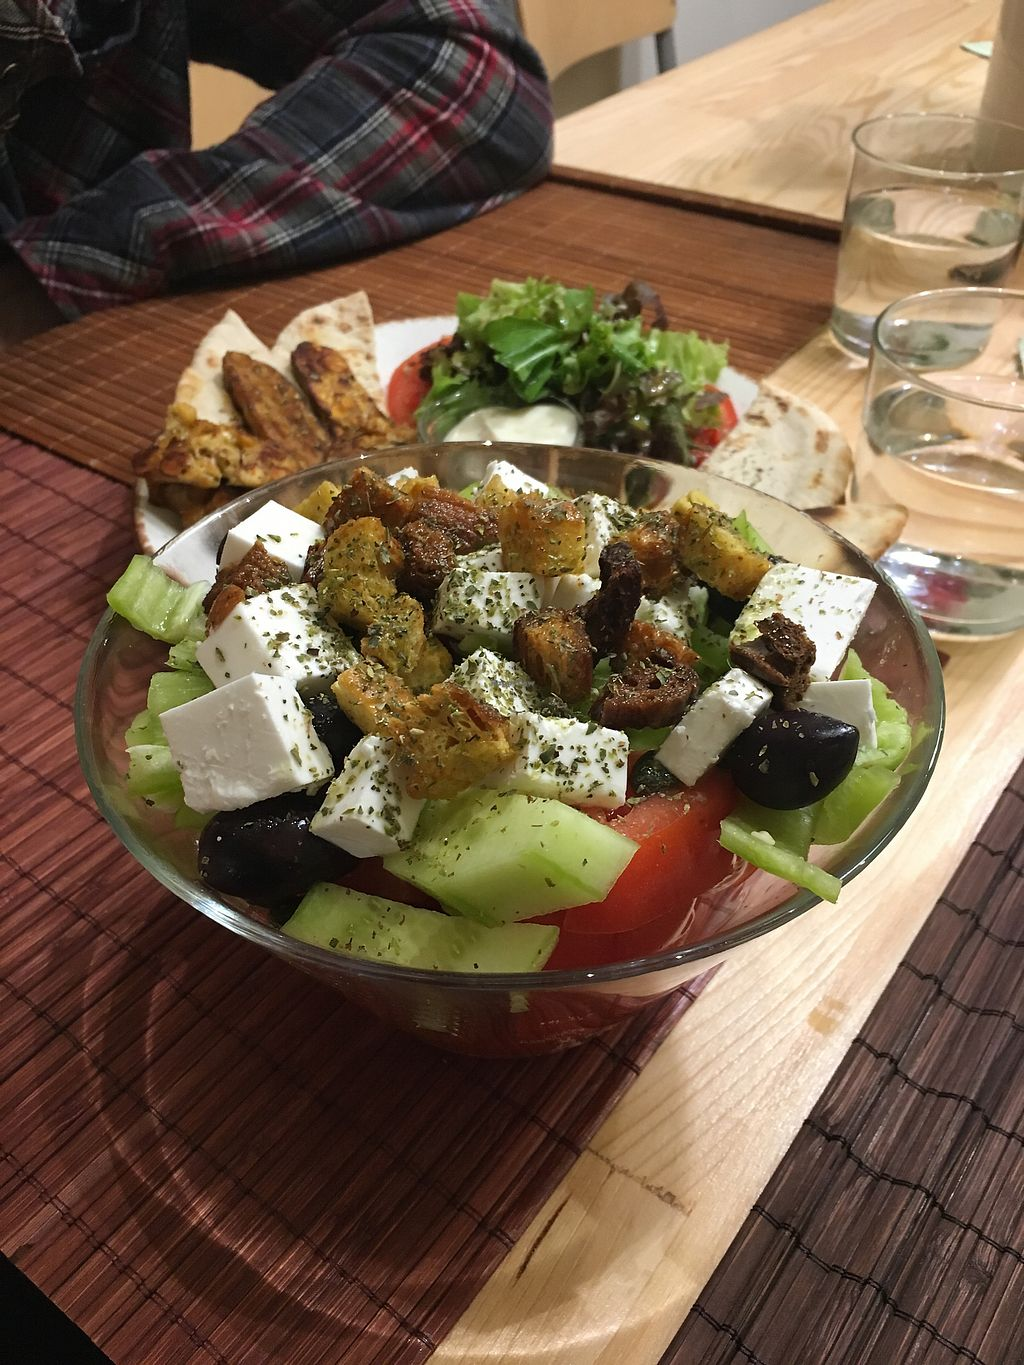 """Photo of Peas  by <a href=""""/members/profile/k8_215"""">k8_215</a> <br/>Delicious salad  <br/> March 10, 2018  - <a href='/contact/abuse/image/104532/368771'>Report</a>"""